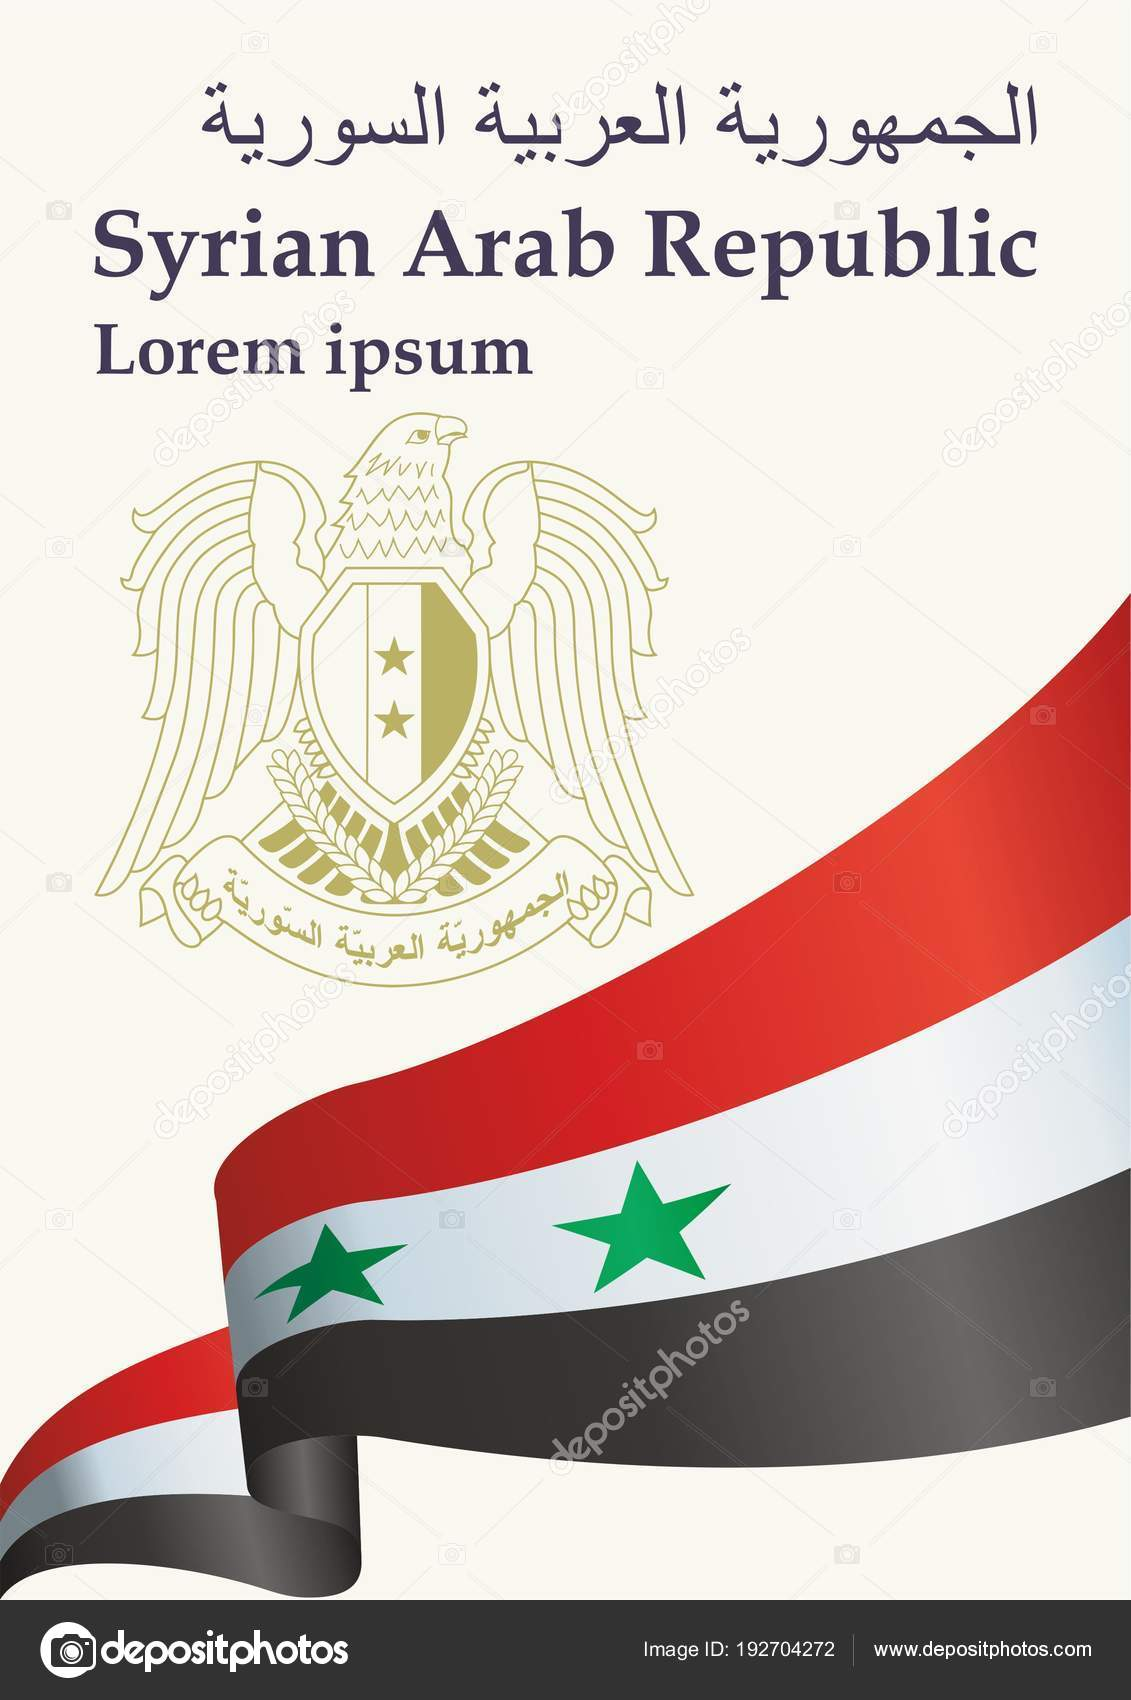 the syrian arab republic essay The topic of public policy can lead to a wide range of essays as your students discuss not only the policy process but also specific policies that are in place.